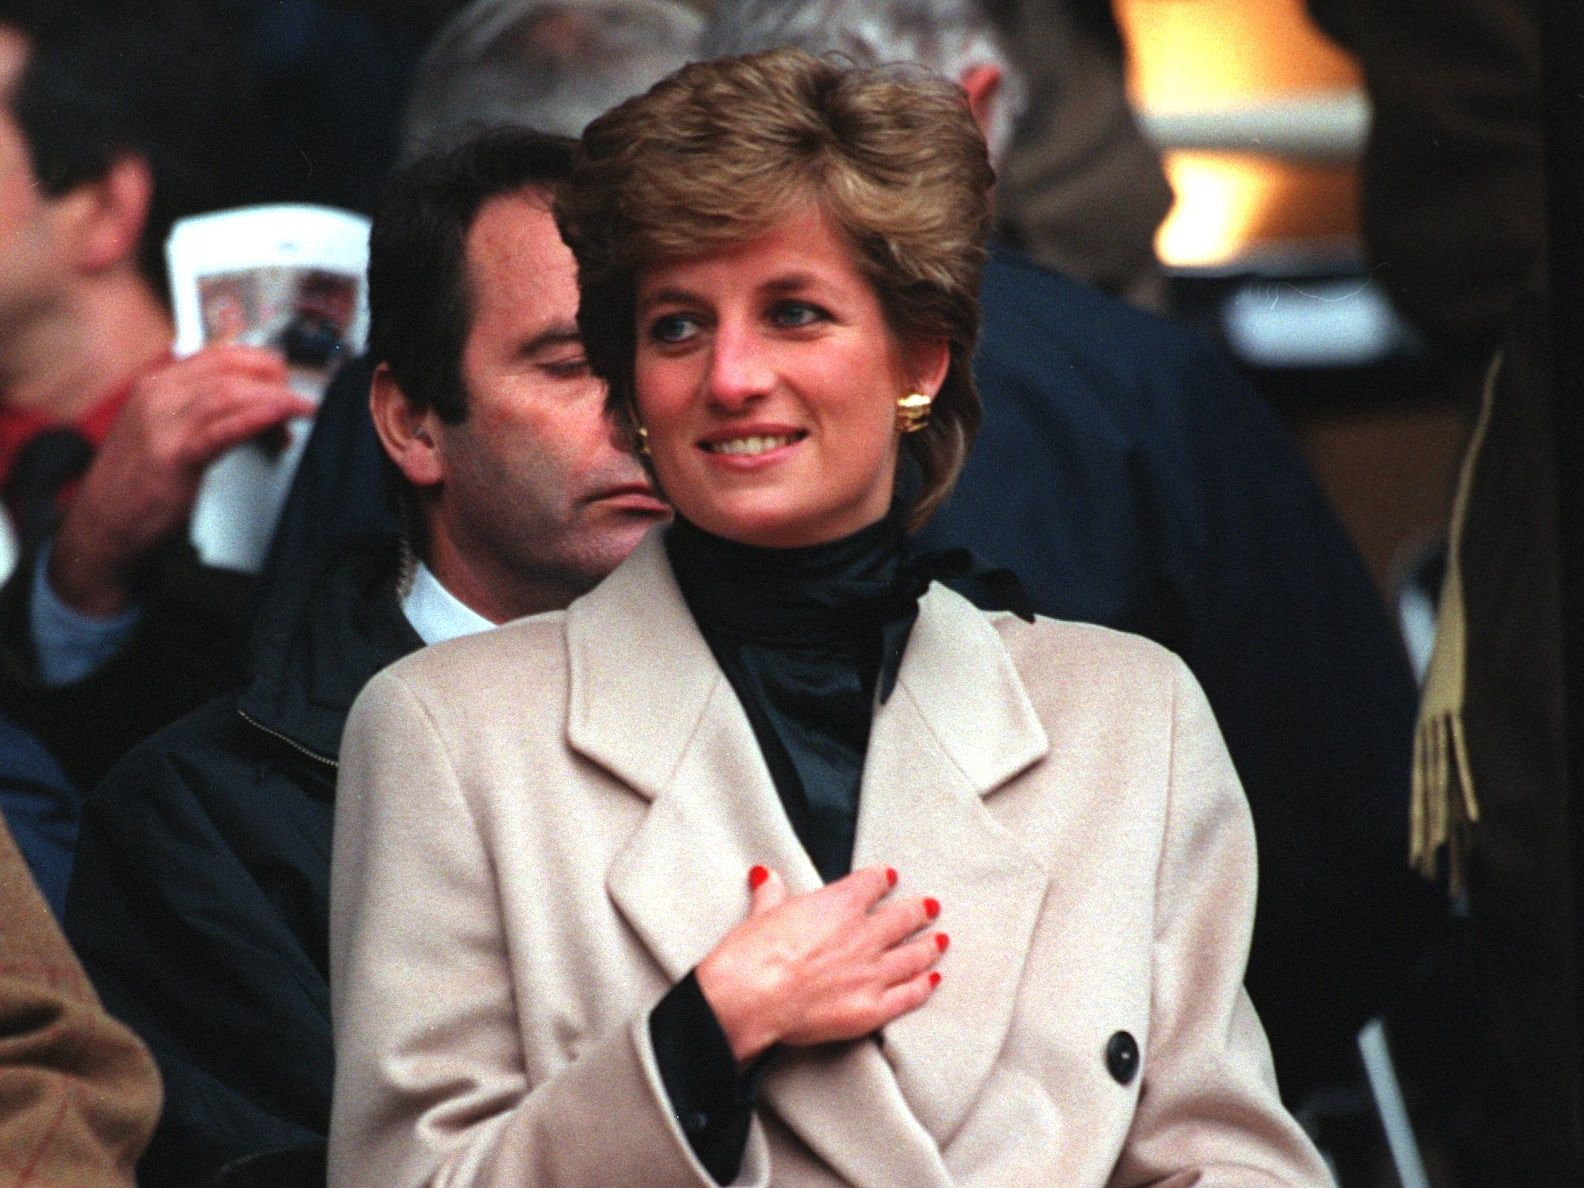 21/01/1995 THE PRINCESS OF WALES WATCHES THE WELSH RUGBY UNION TEAM DURING THEIR FIRST FIVE NATIONS MATCH OF THE SEASON AGAINST FRANCE AT PARC DES PRINCES IN PARIS. POLITICA EUROPA ESPAÑA SOCIEDAD PASCAL RONDEAU